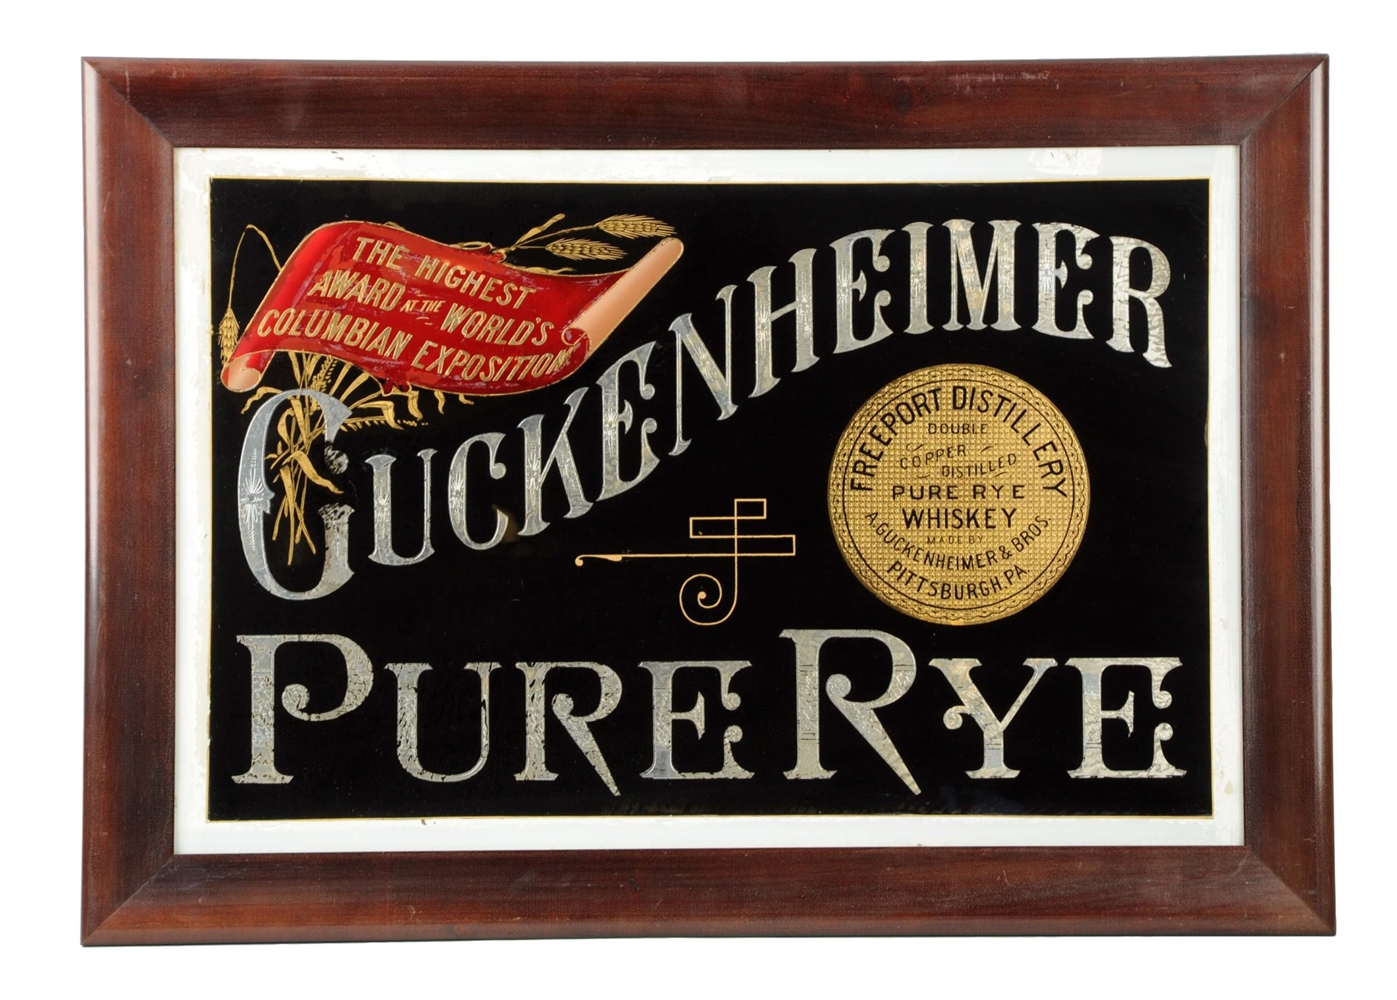 Guckenheimer Pure Rye Whiskey ROG Sign, Pittsburgh, PA. Circa 1900